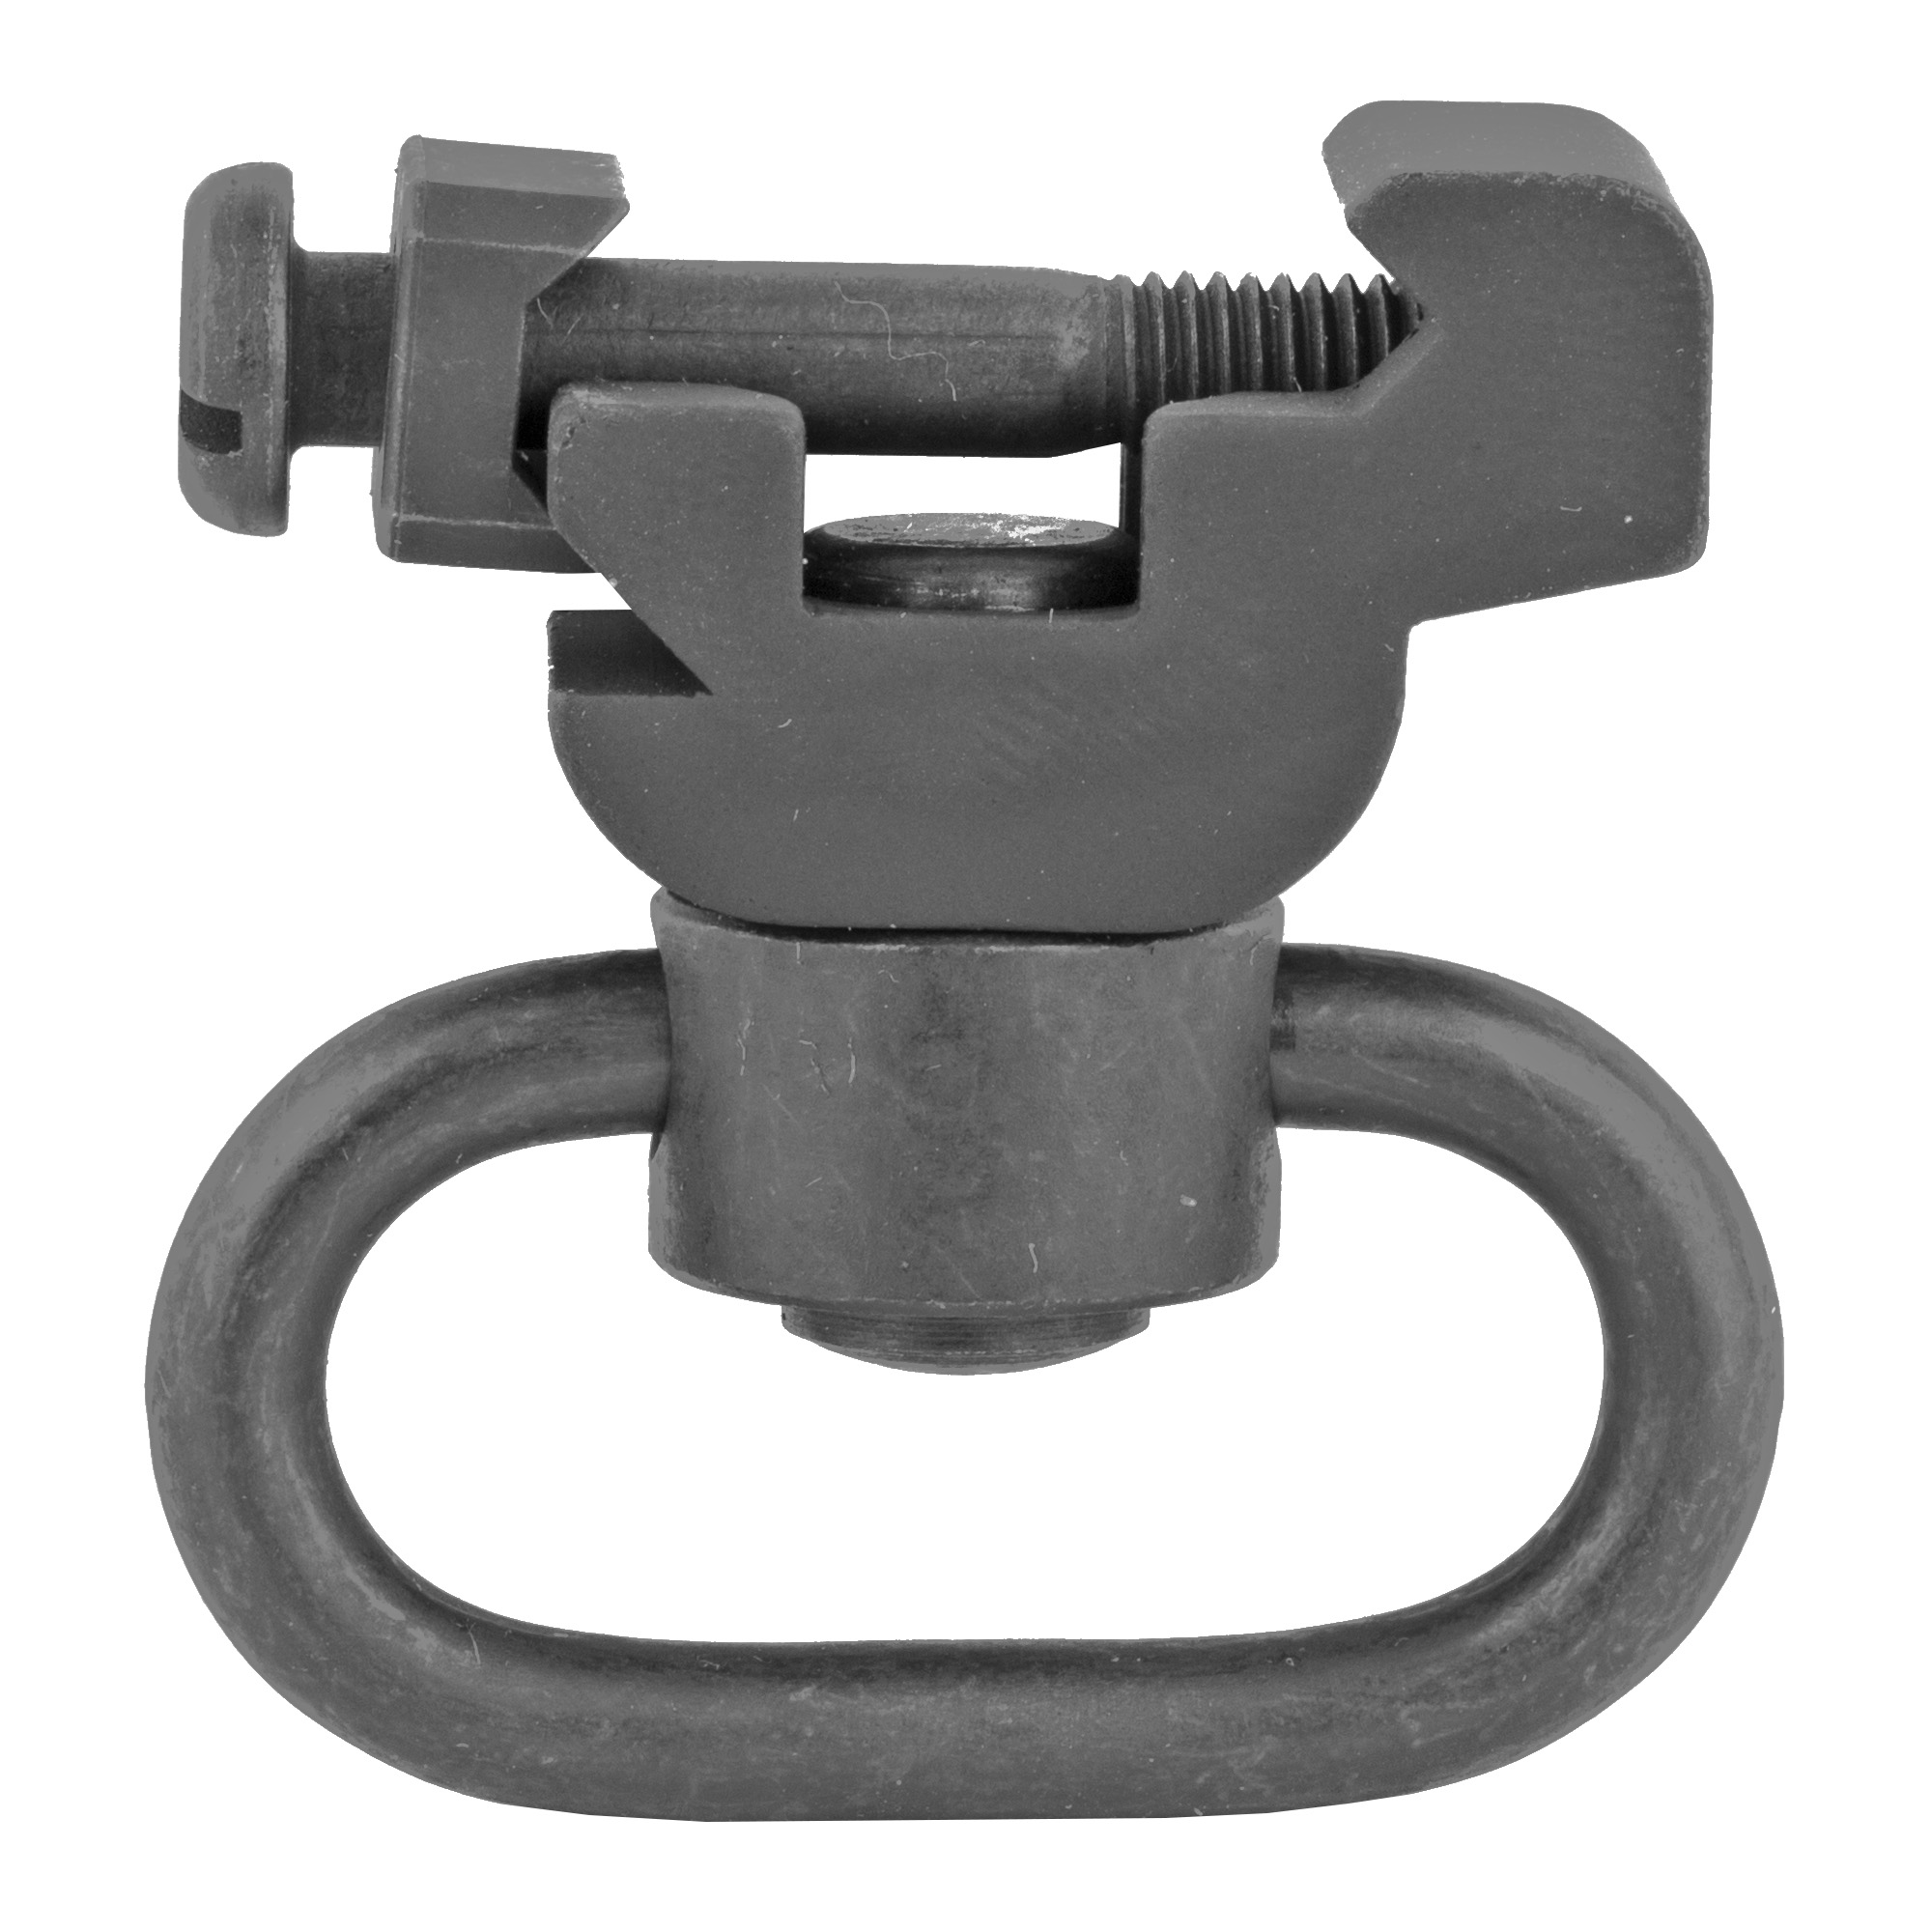 Push button sling swivel mount that fits any MIL-STD-1913 rail to allow for optimal operator customization.